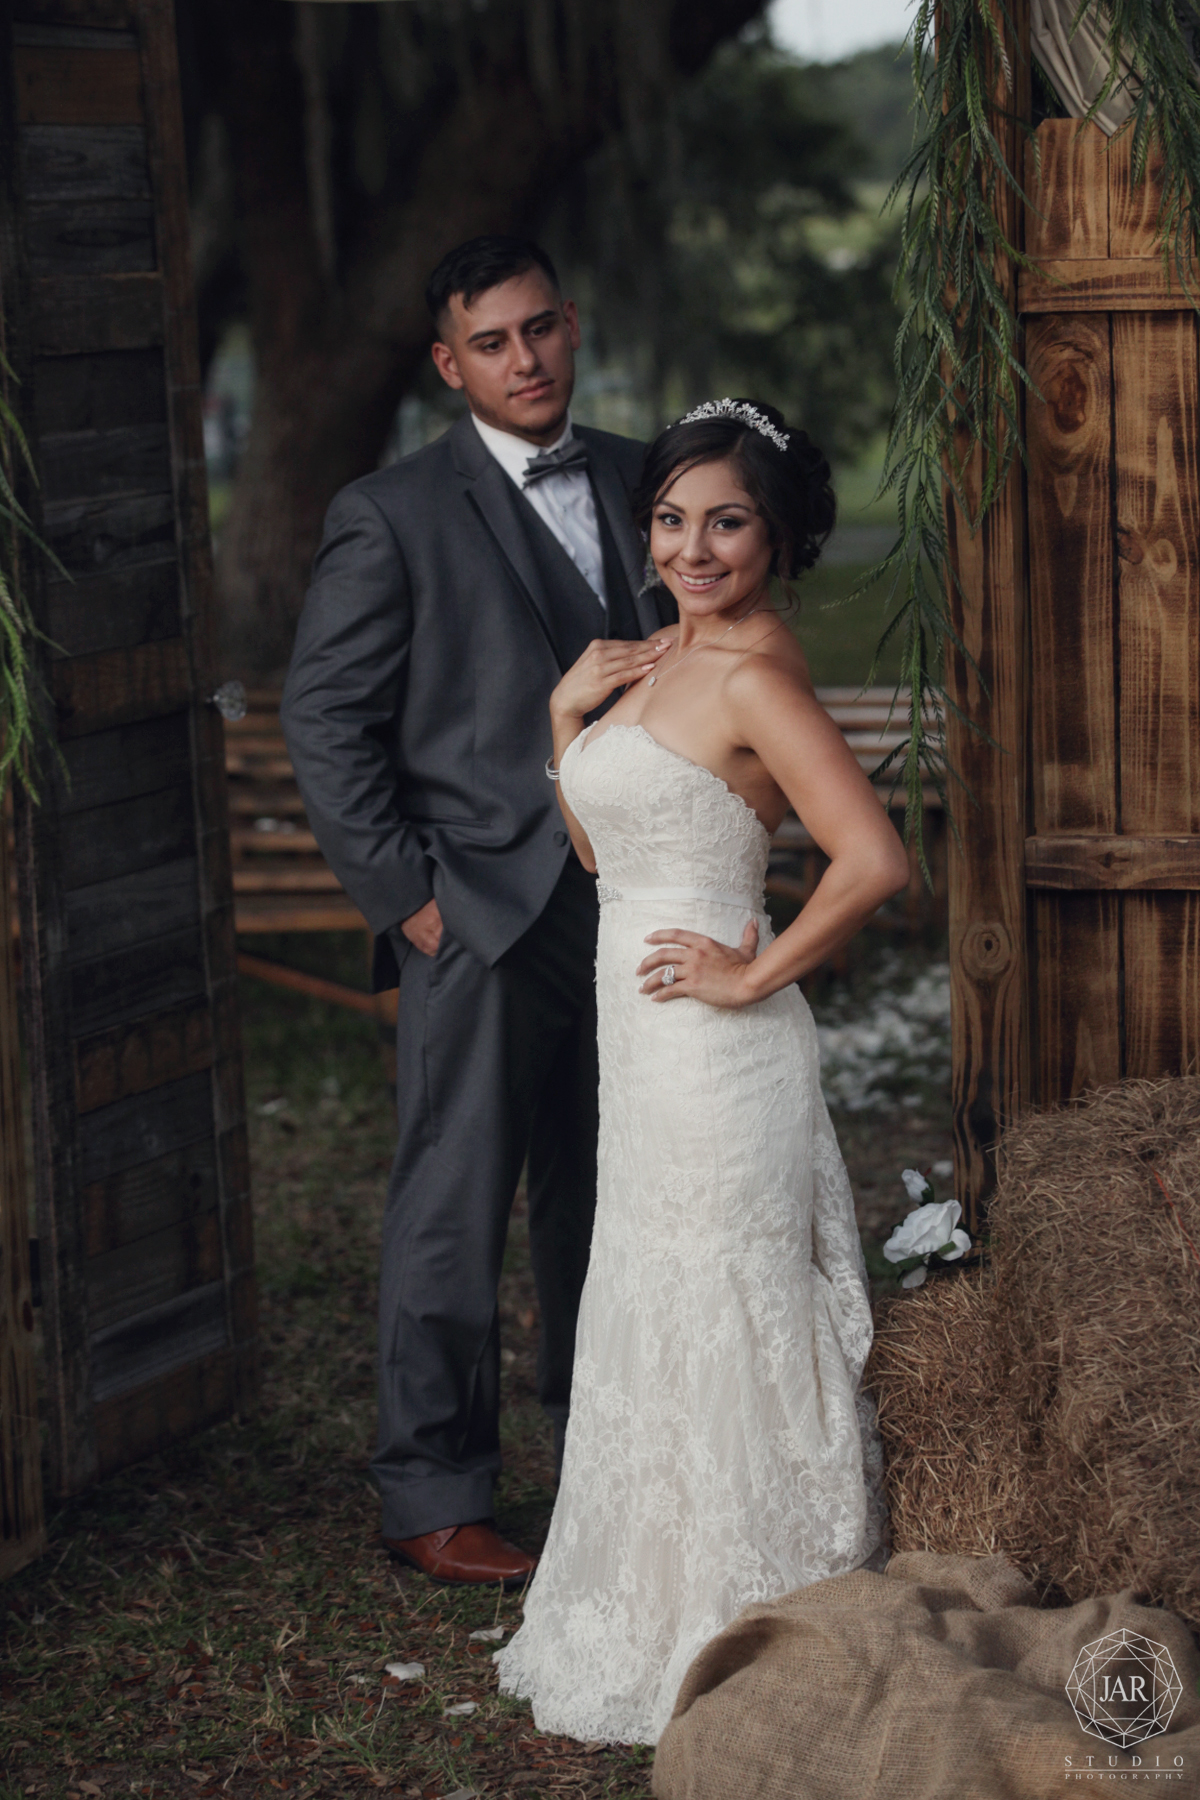 36-unique-outdoor-rustic-place-to-get-married-orlando-photographer-jarstudio.JPG